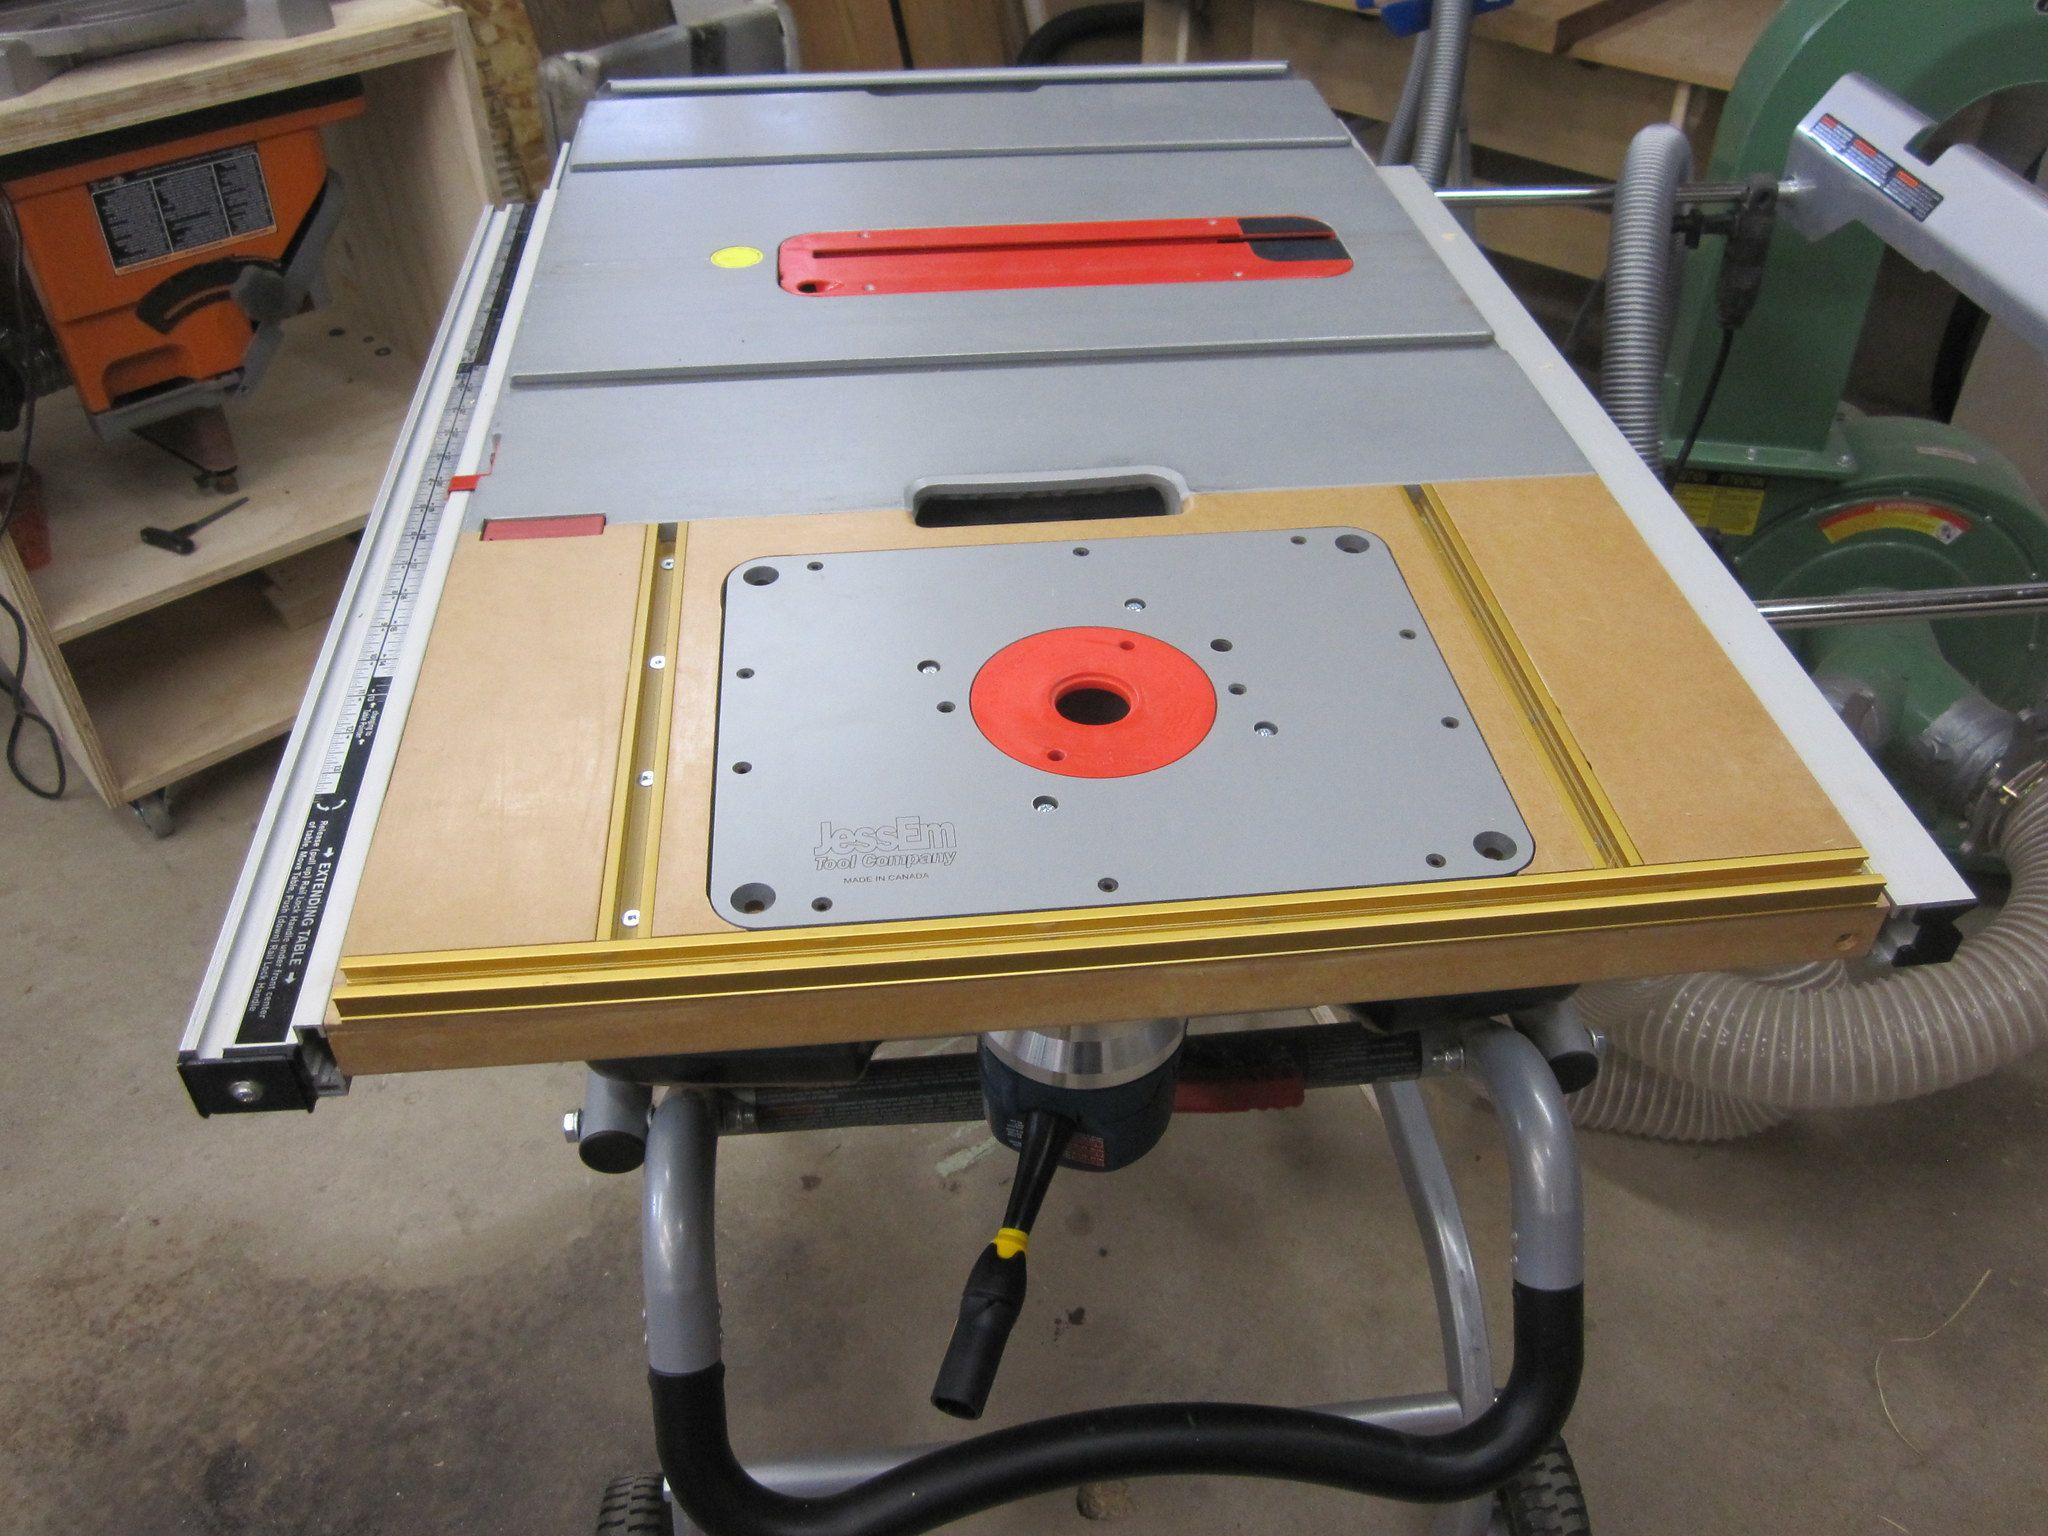 Img 3308 Brad Taylor Flickr In 2020 Portable Table Saw Woodworking Table Saw Table Saw